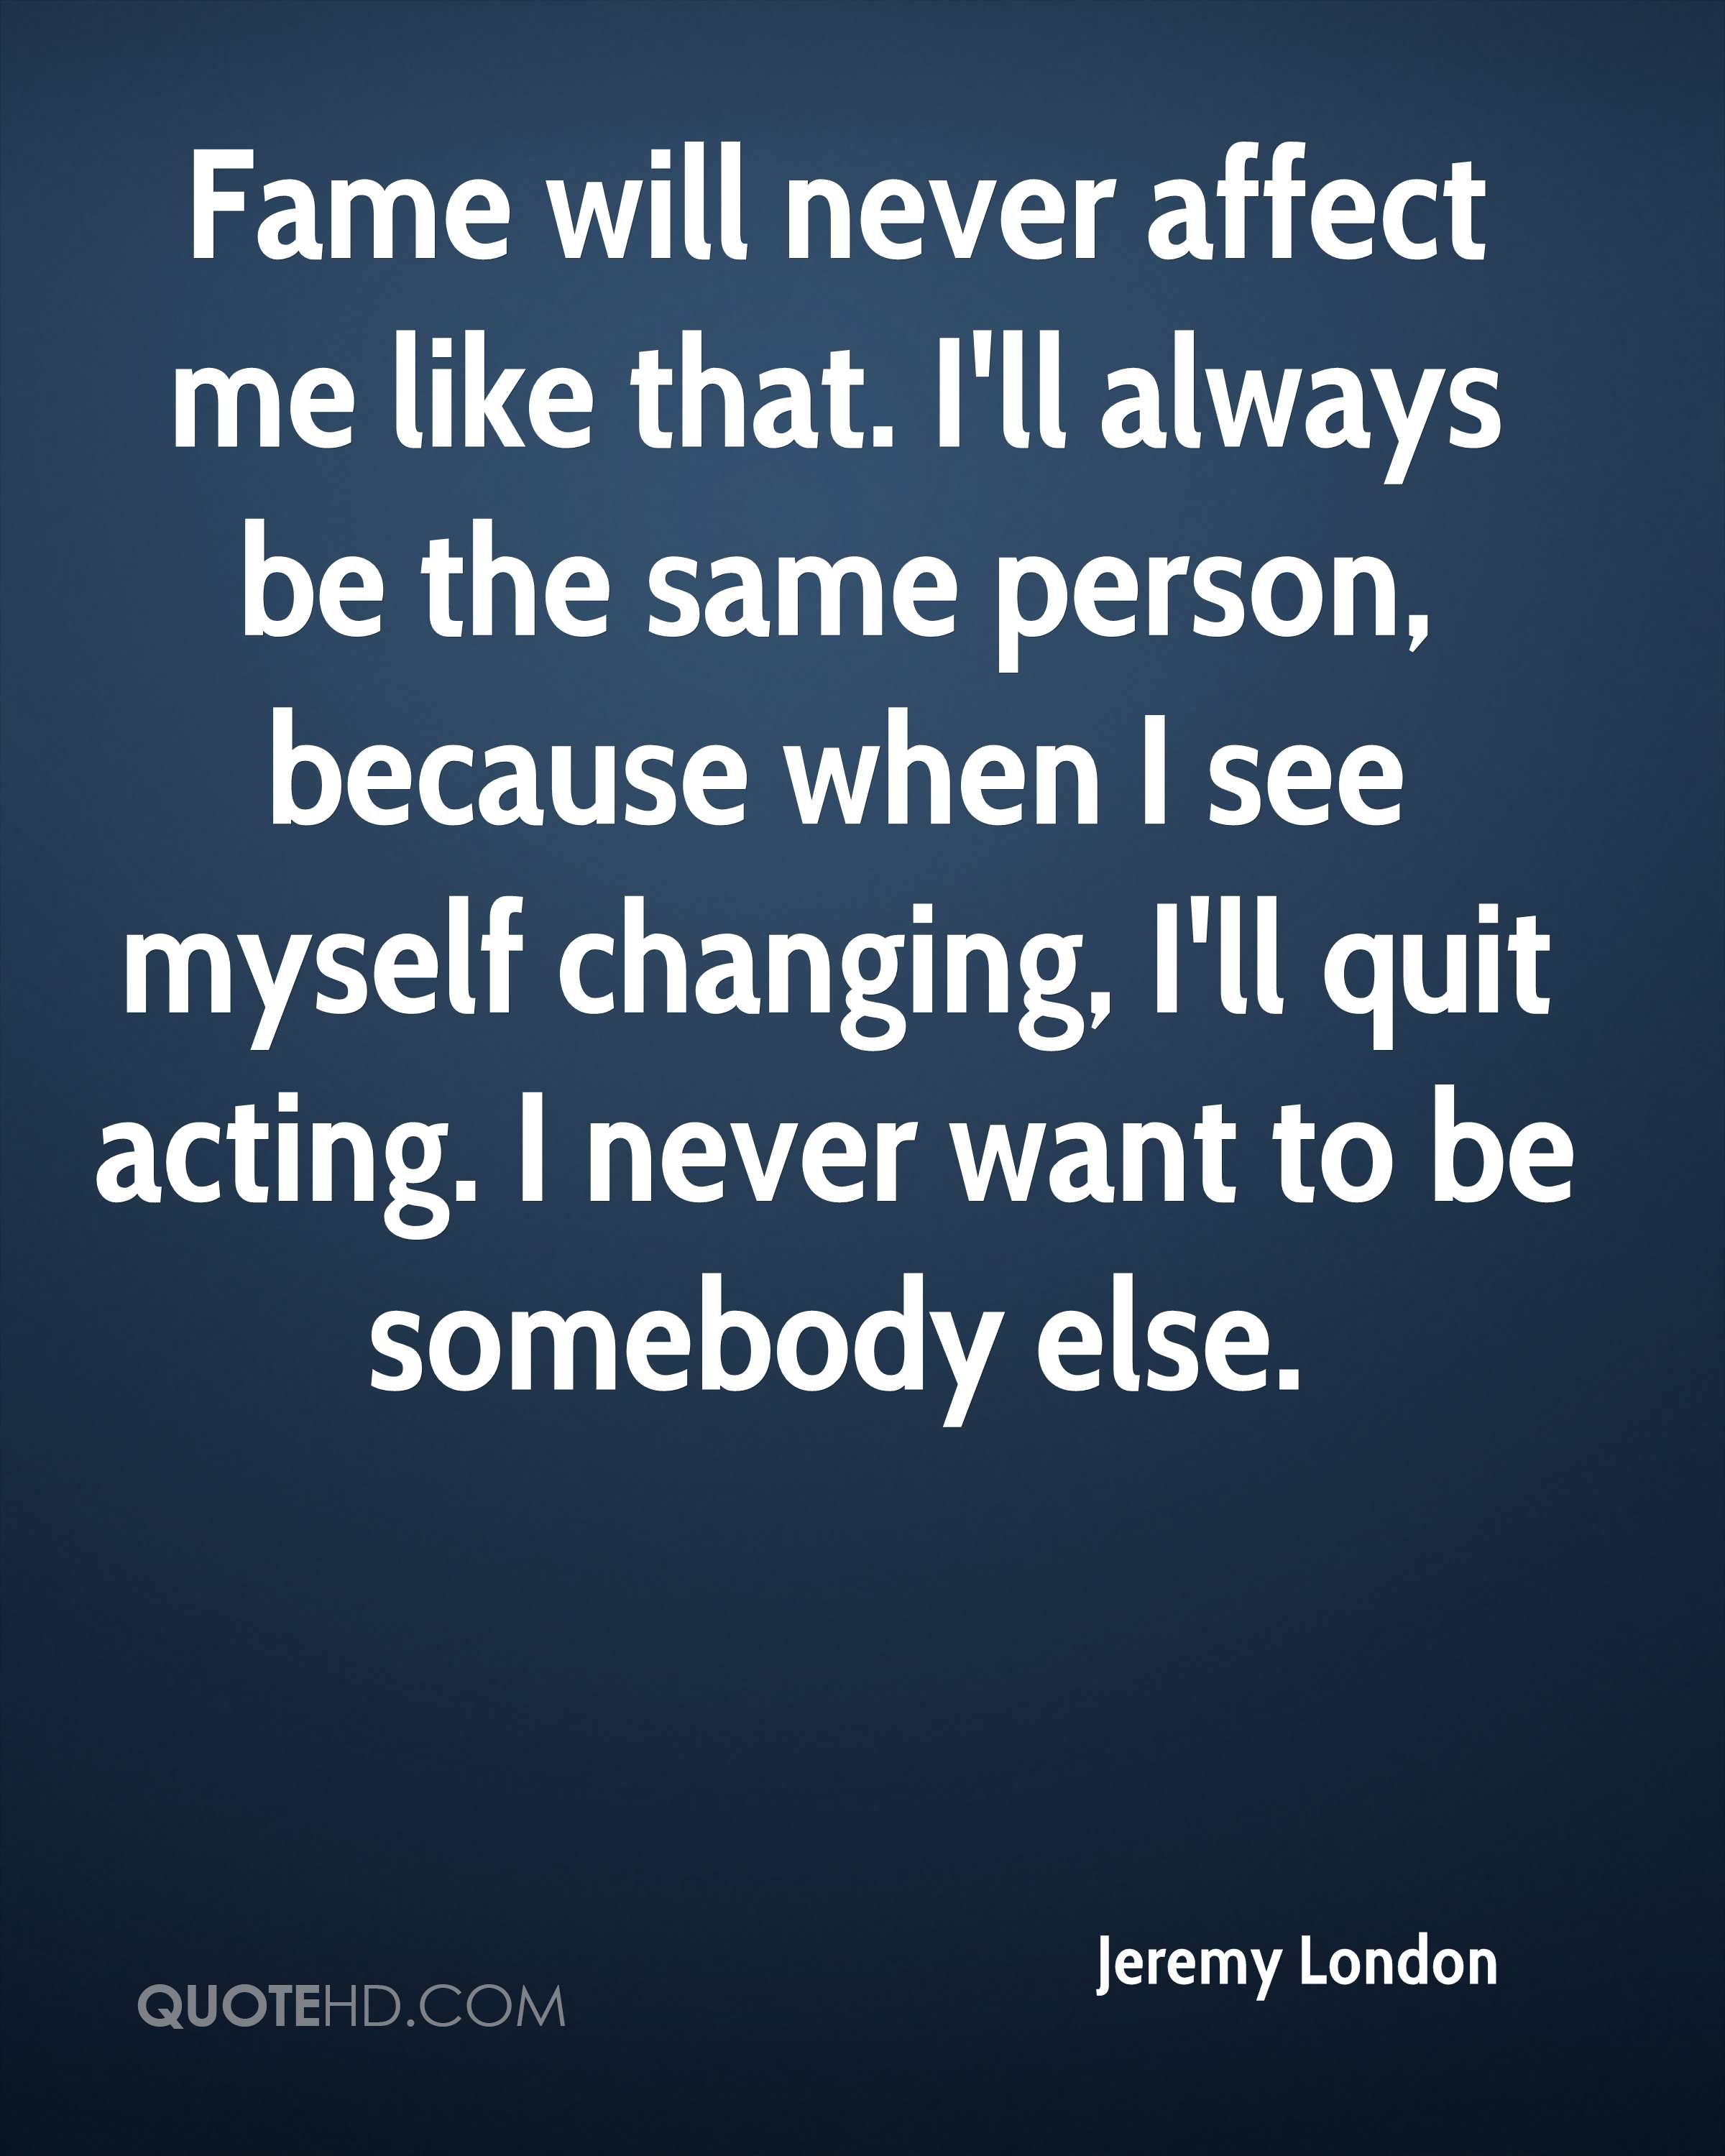 Fame will never affect me like that. I'll always be the same person, because when I see myself changing, I'll quit acting. I never want to be somebody else.